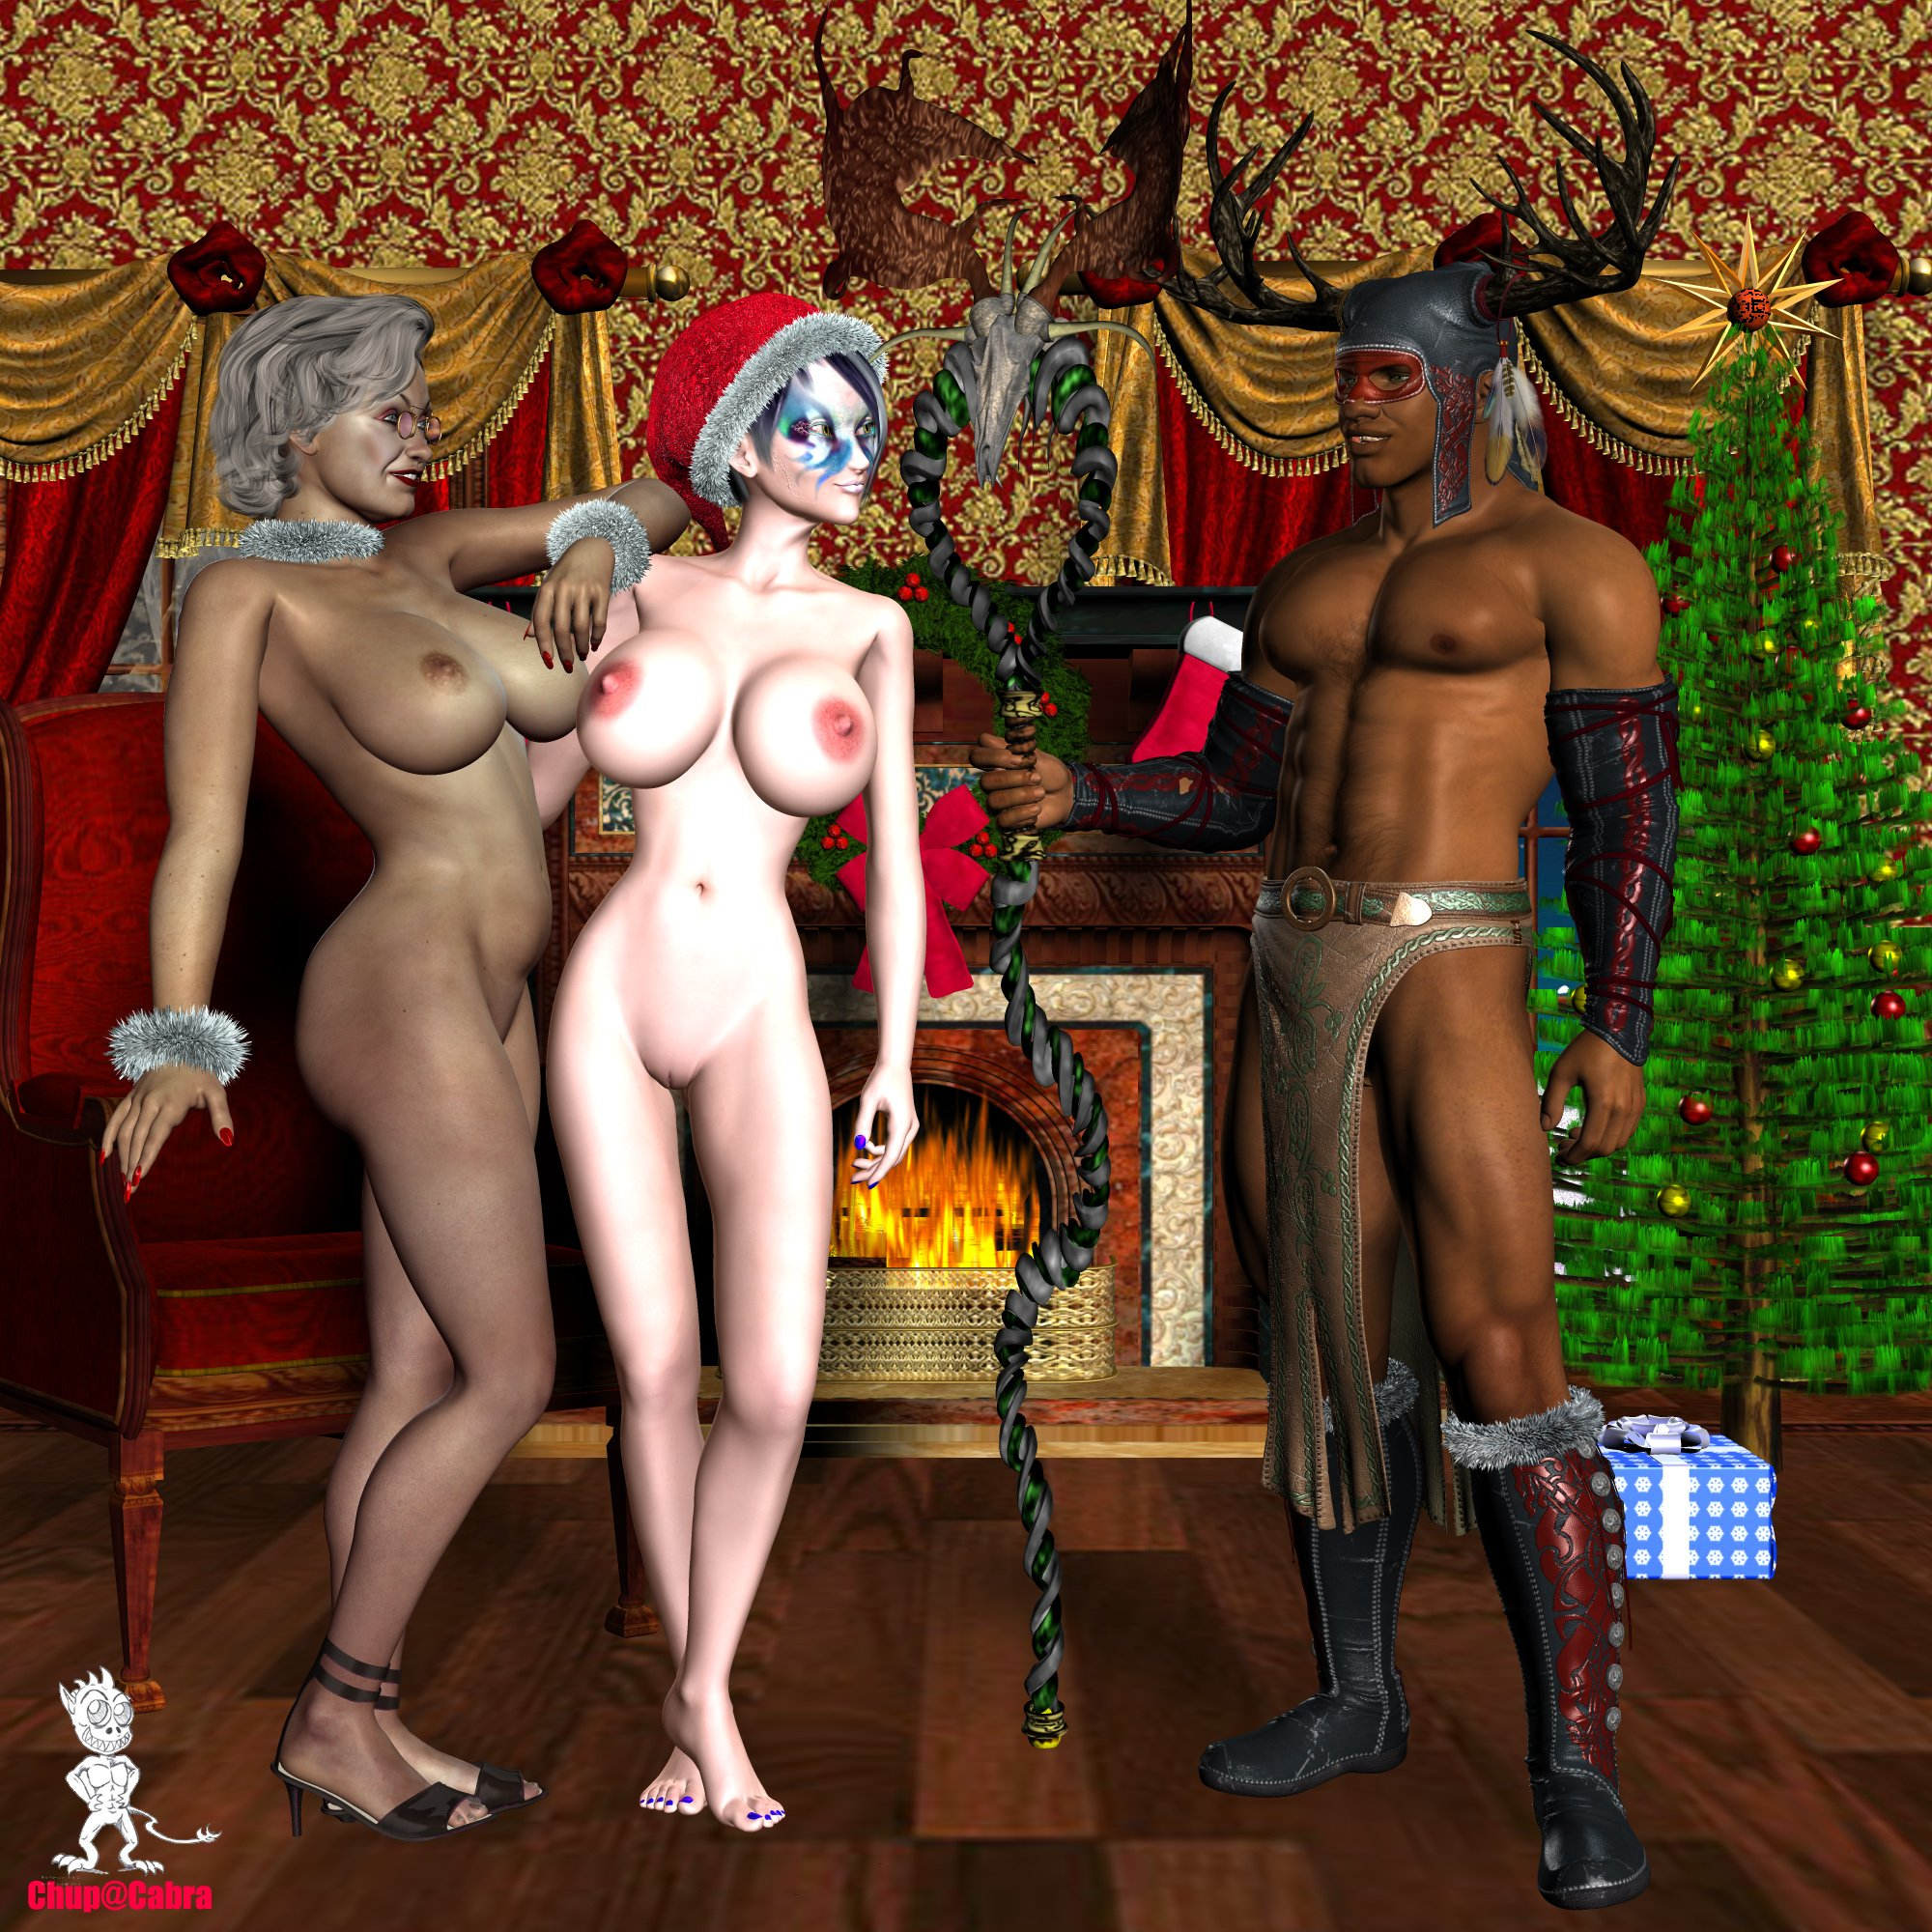 Santa claus having sex with a elf  naked scene